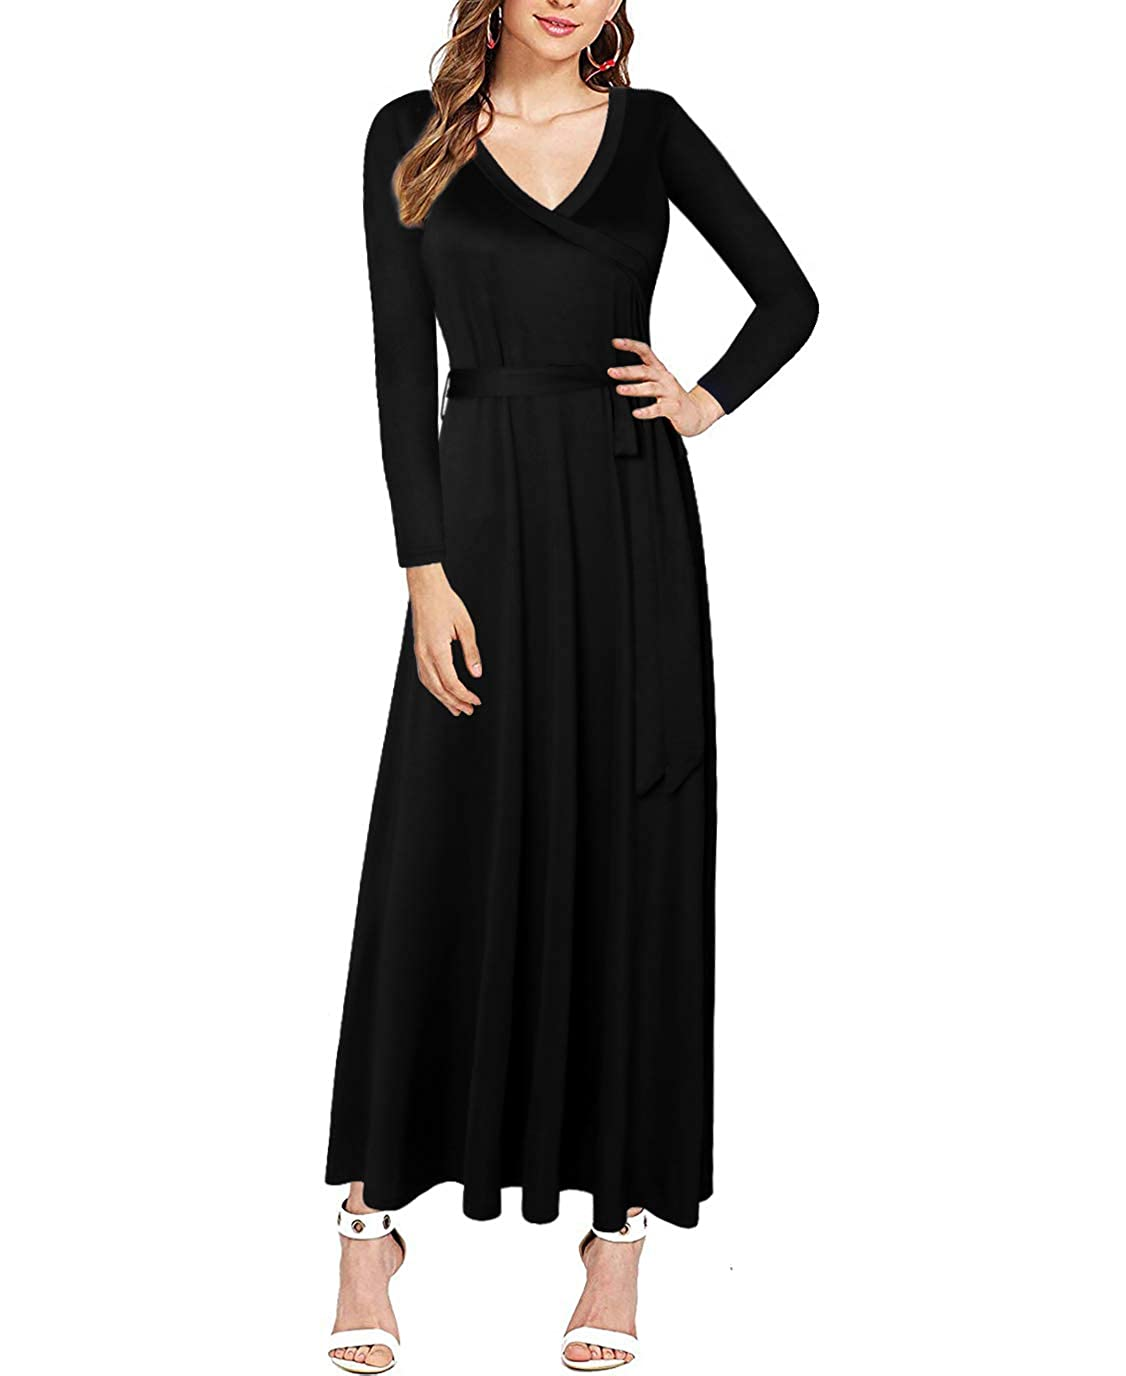 a06ed03d5b54 MISSJOY Women s V-Neck Long Sleeve Solid Party Plain Maxi Dress Loose  Casual Long Dresses at Amazon Women s Clothing store